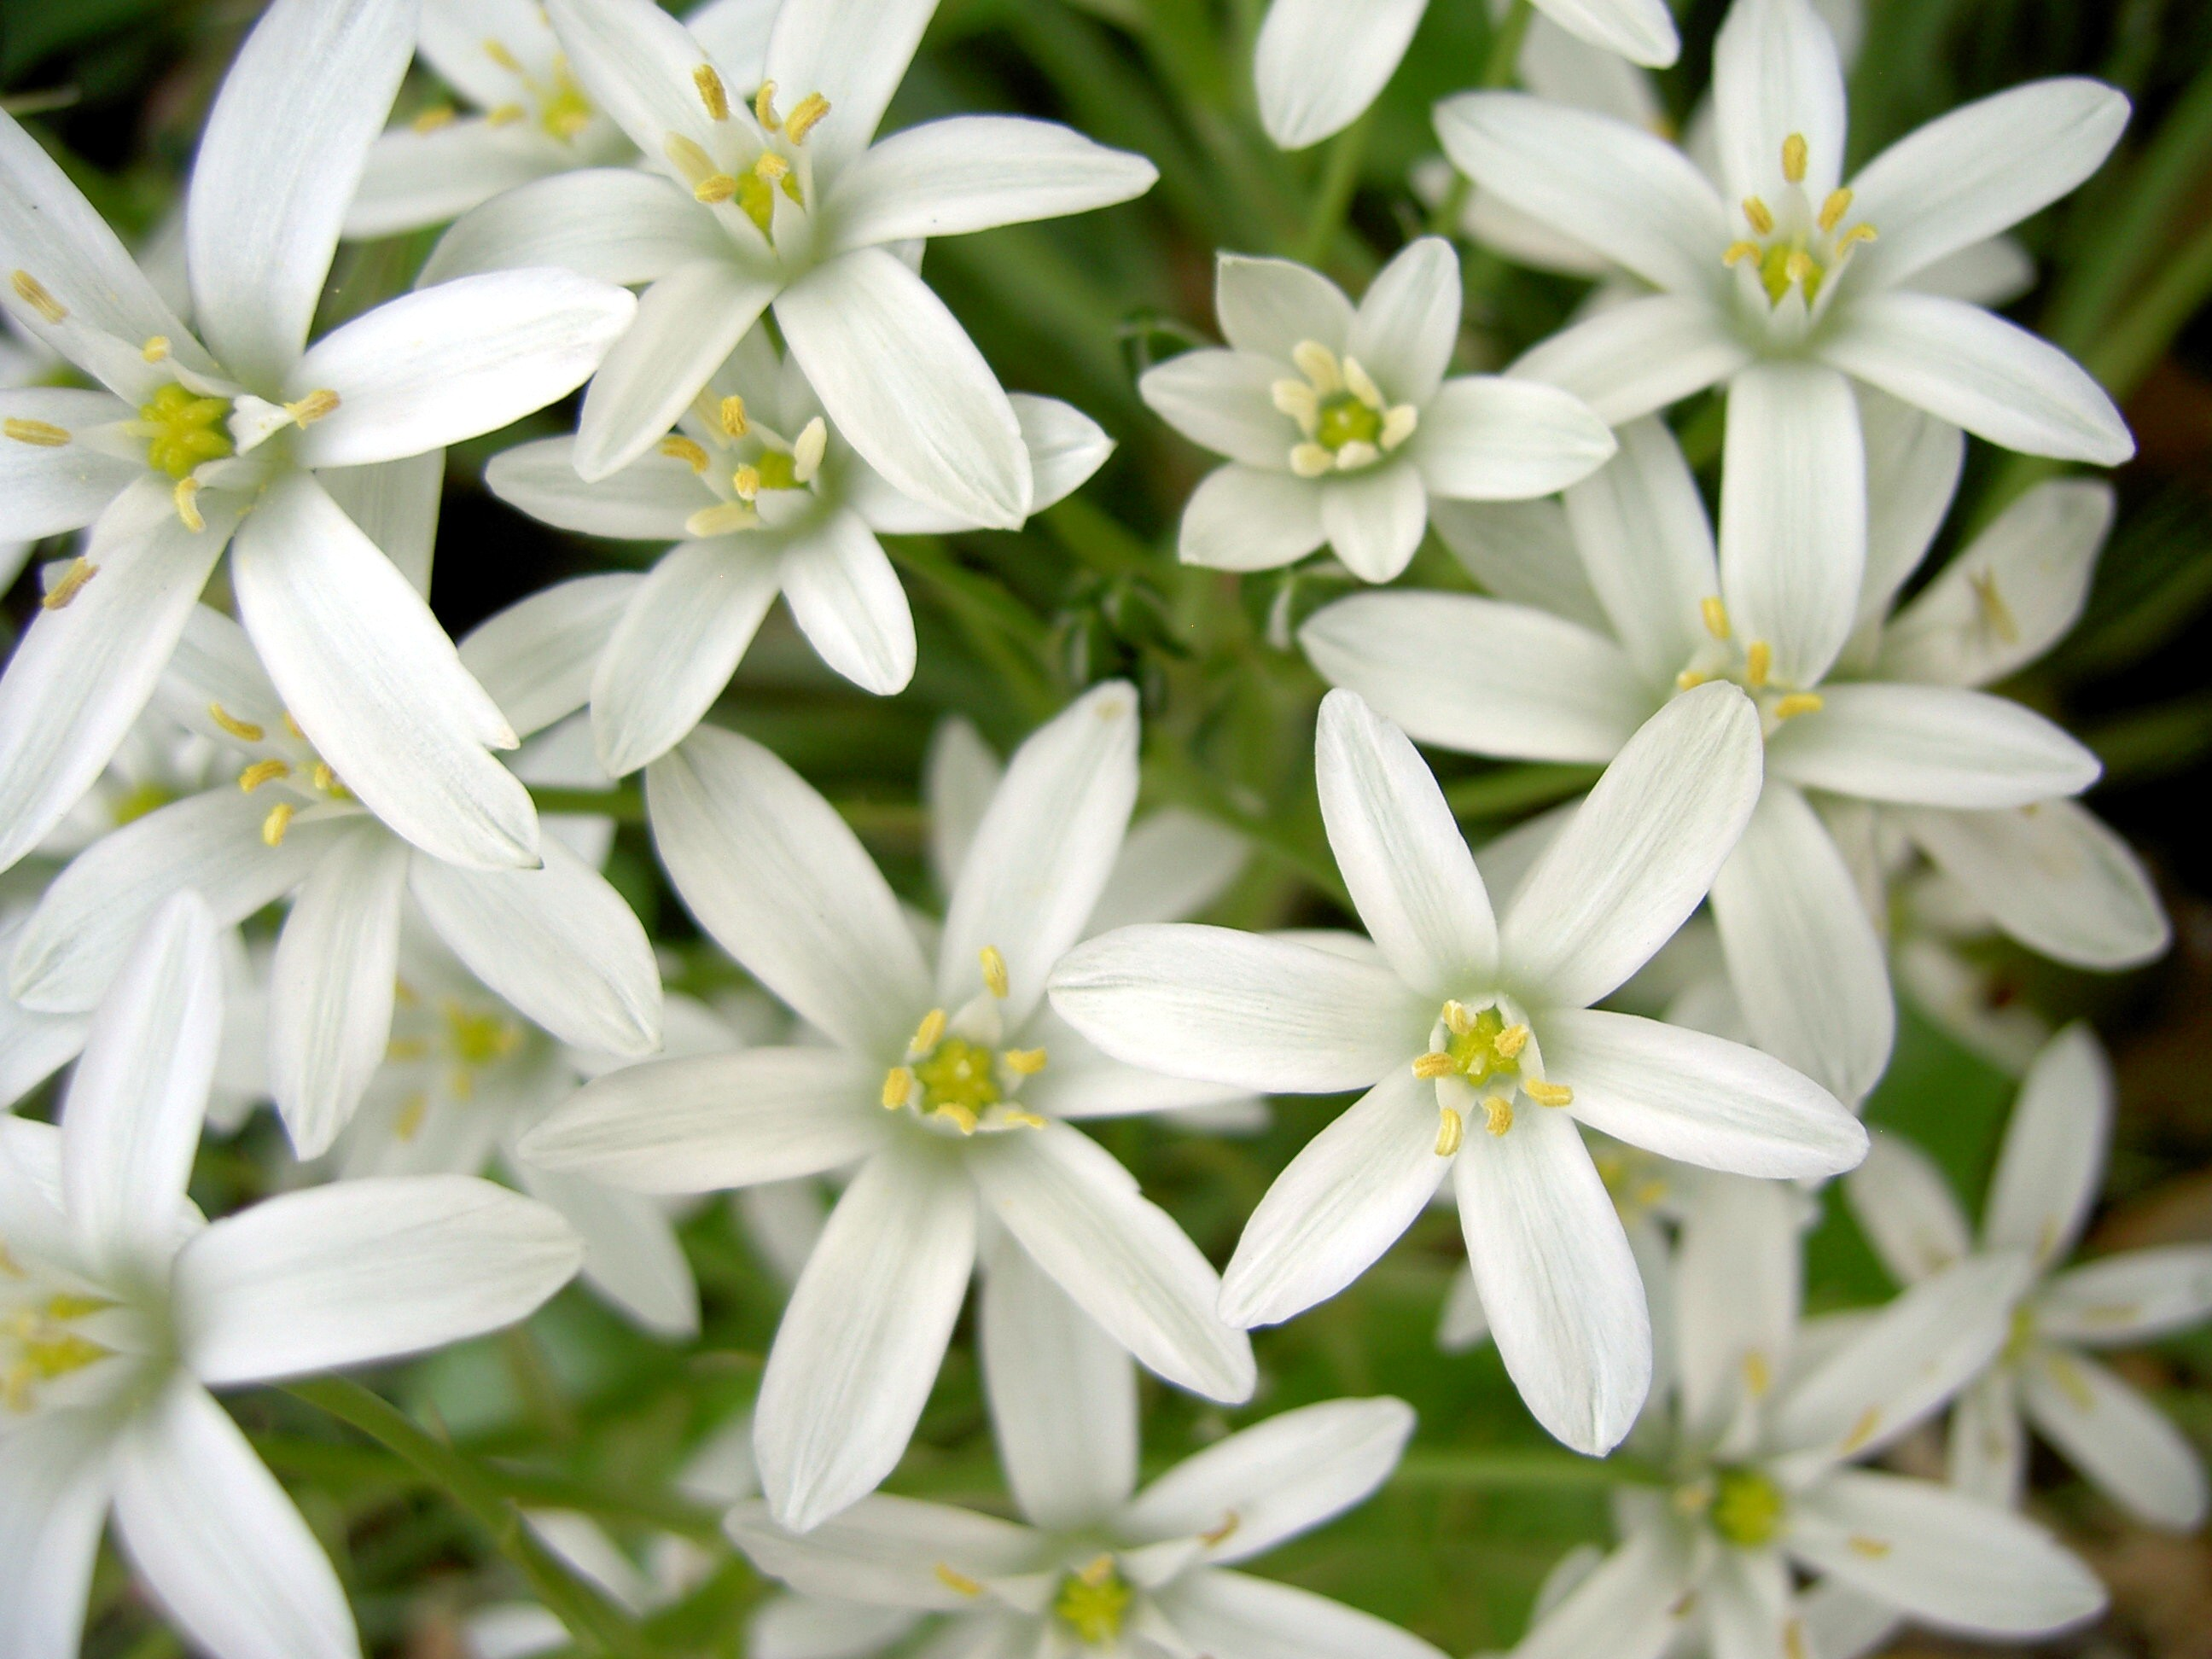 Star Of Bethlehem The Flower That Lights Up The Darkness Of The